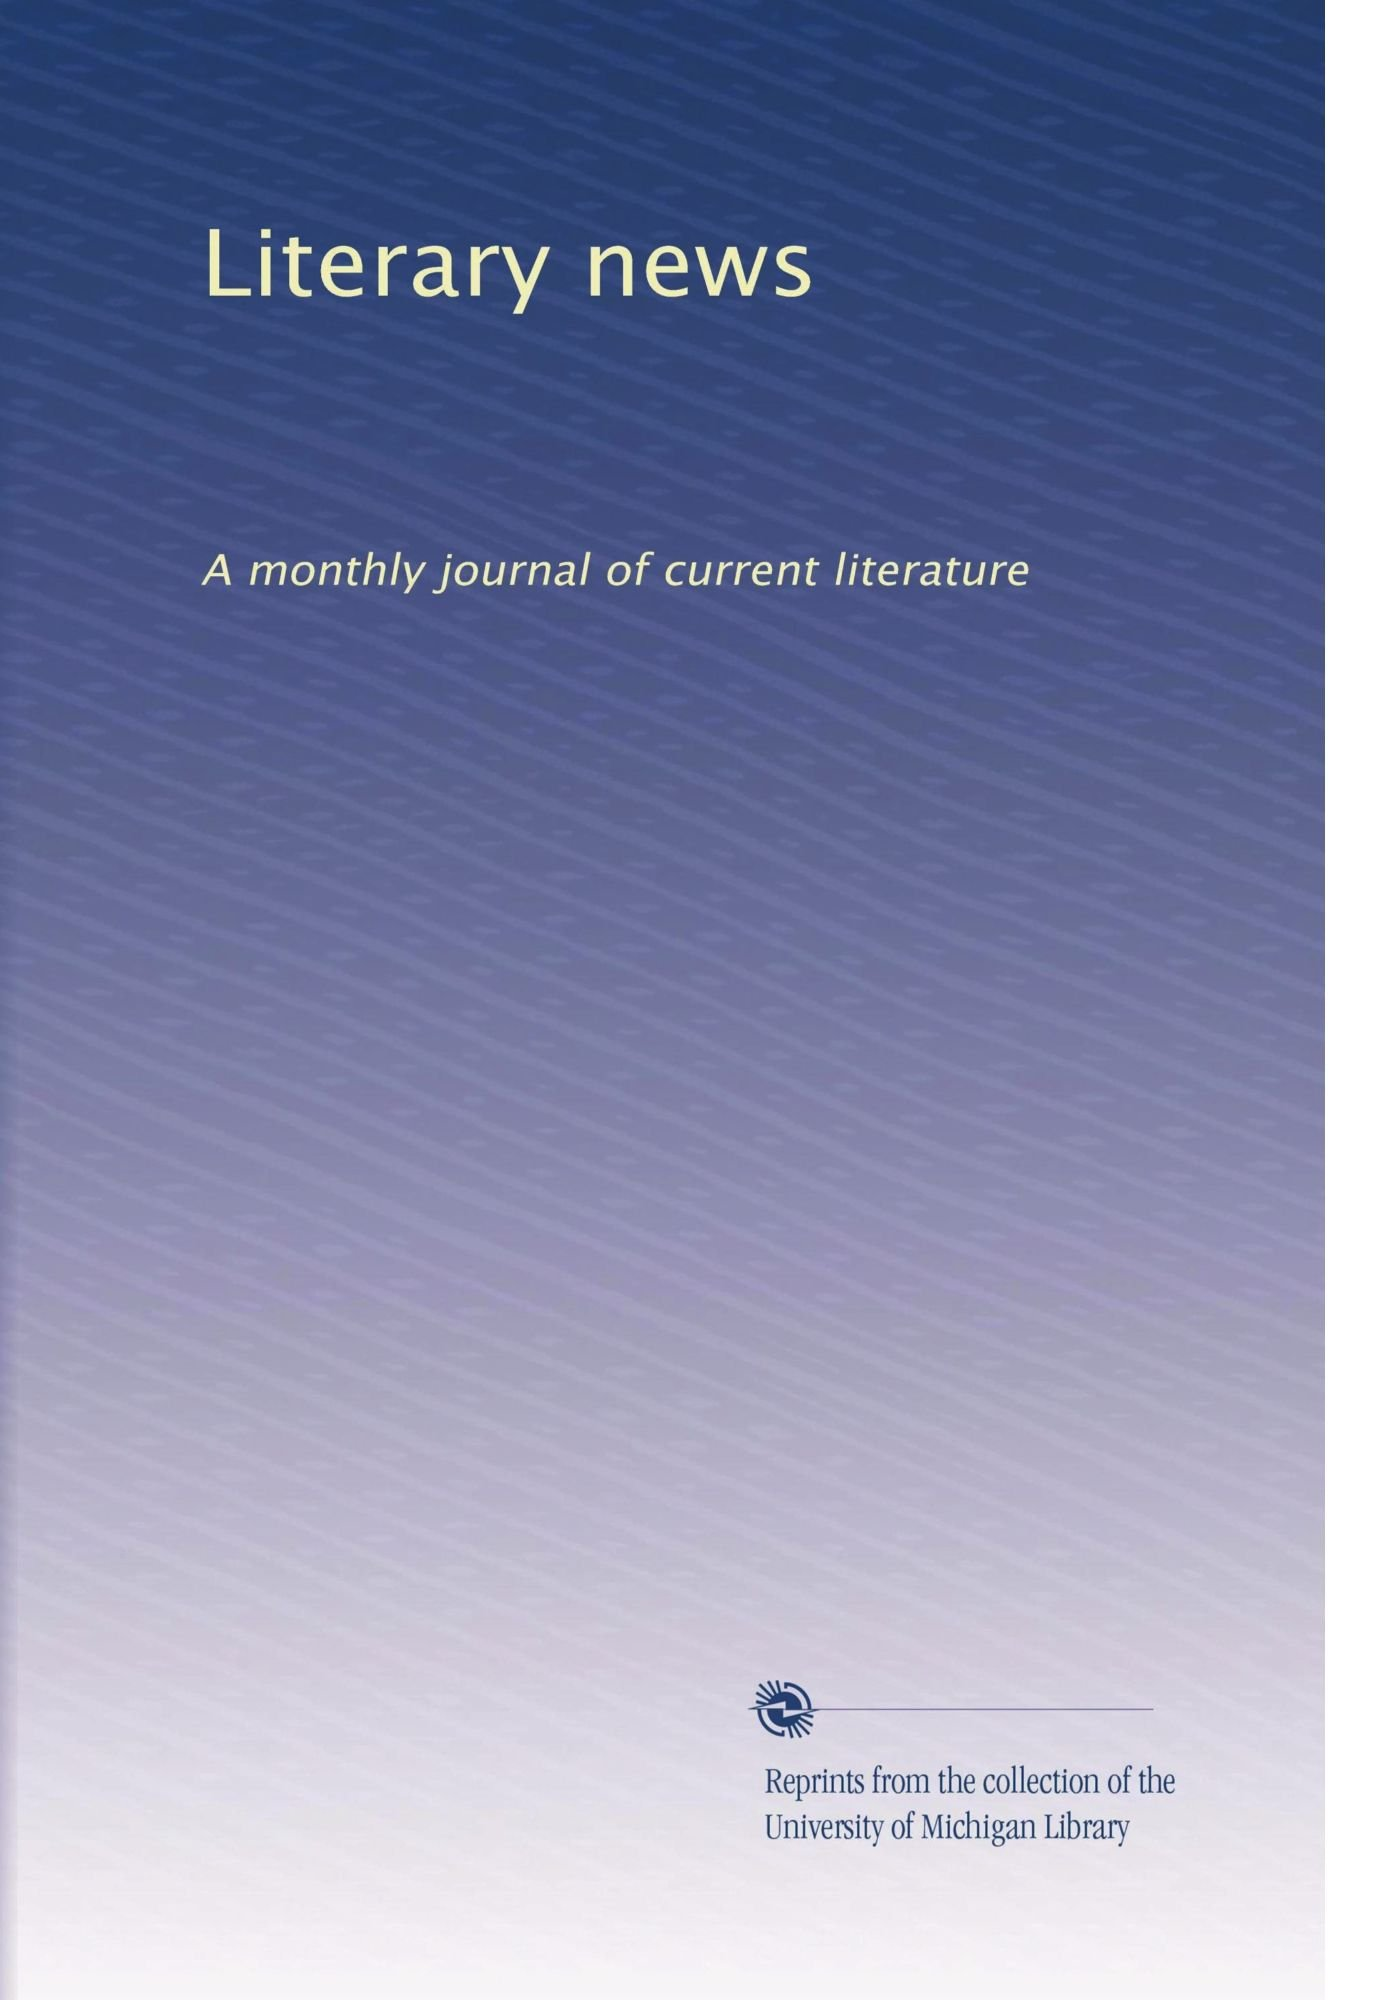 Download Literary news: A monthly journal of current literature (Volume 7) pdf